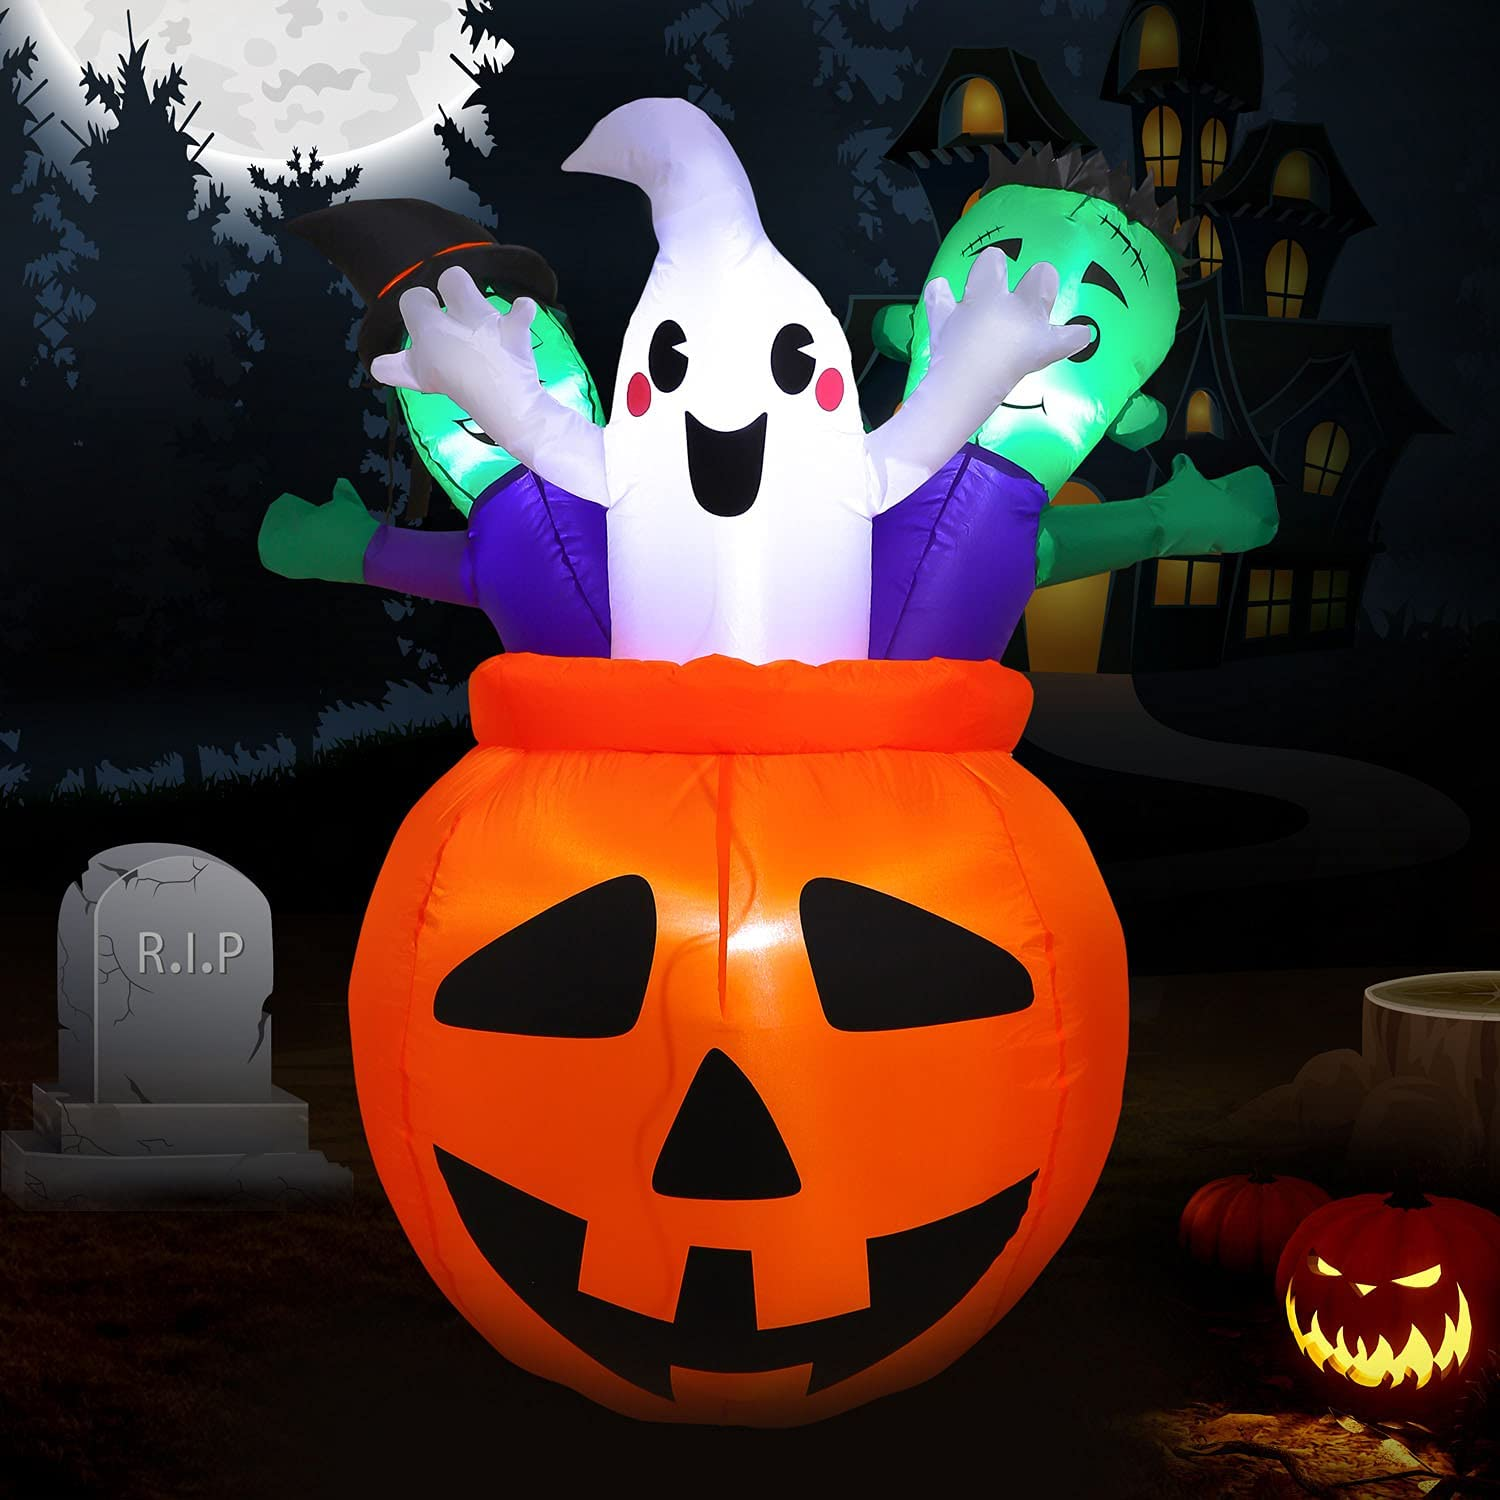 WEFINDER Fashionable 5FT Tall Halloween Inflatable Pumpkin with 3 Cute Ghost Wholesale